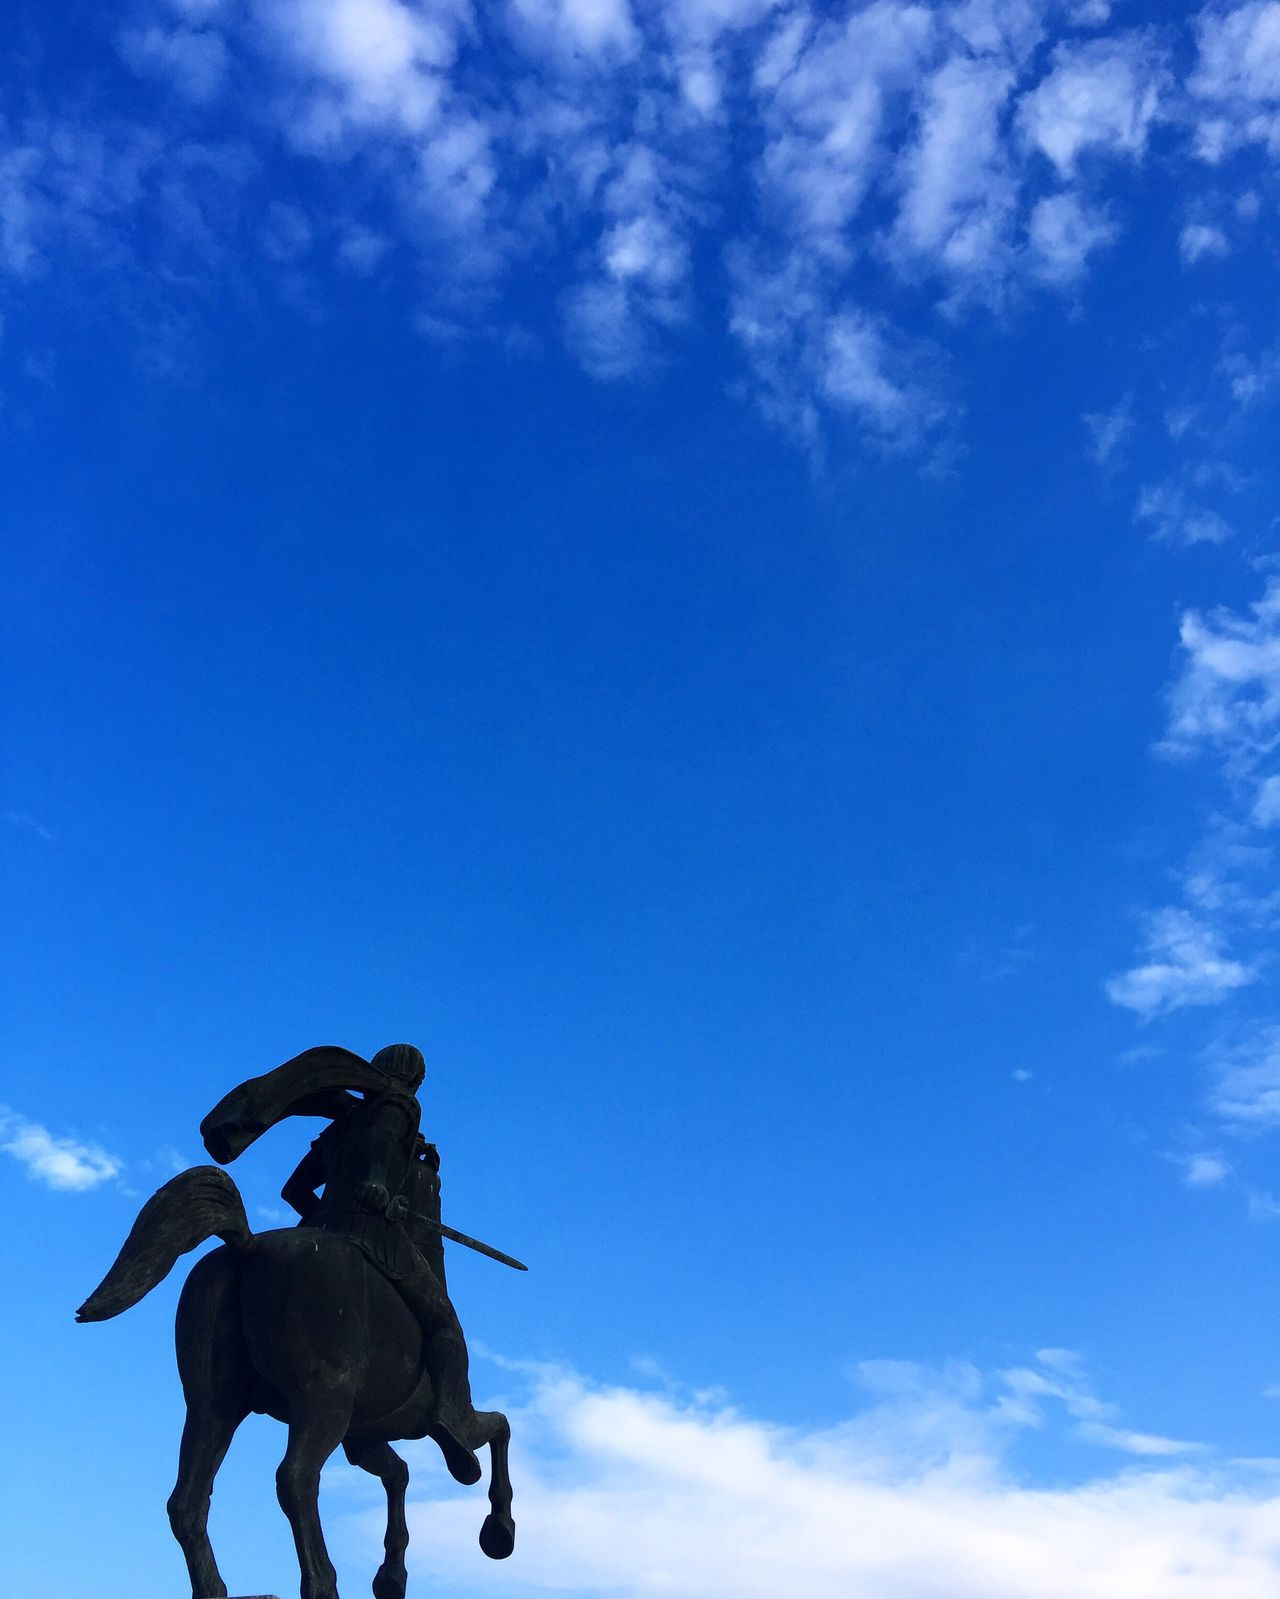 Horse Sky Cloud - Sky Sculpture No People Tranquil Scene Tranquility In Greece Minimalobsession Minimalism Minimalmood Minimal Check This Out Eyeemphotography Statue Minimalist Minimalism_masters Minimalistic